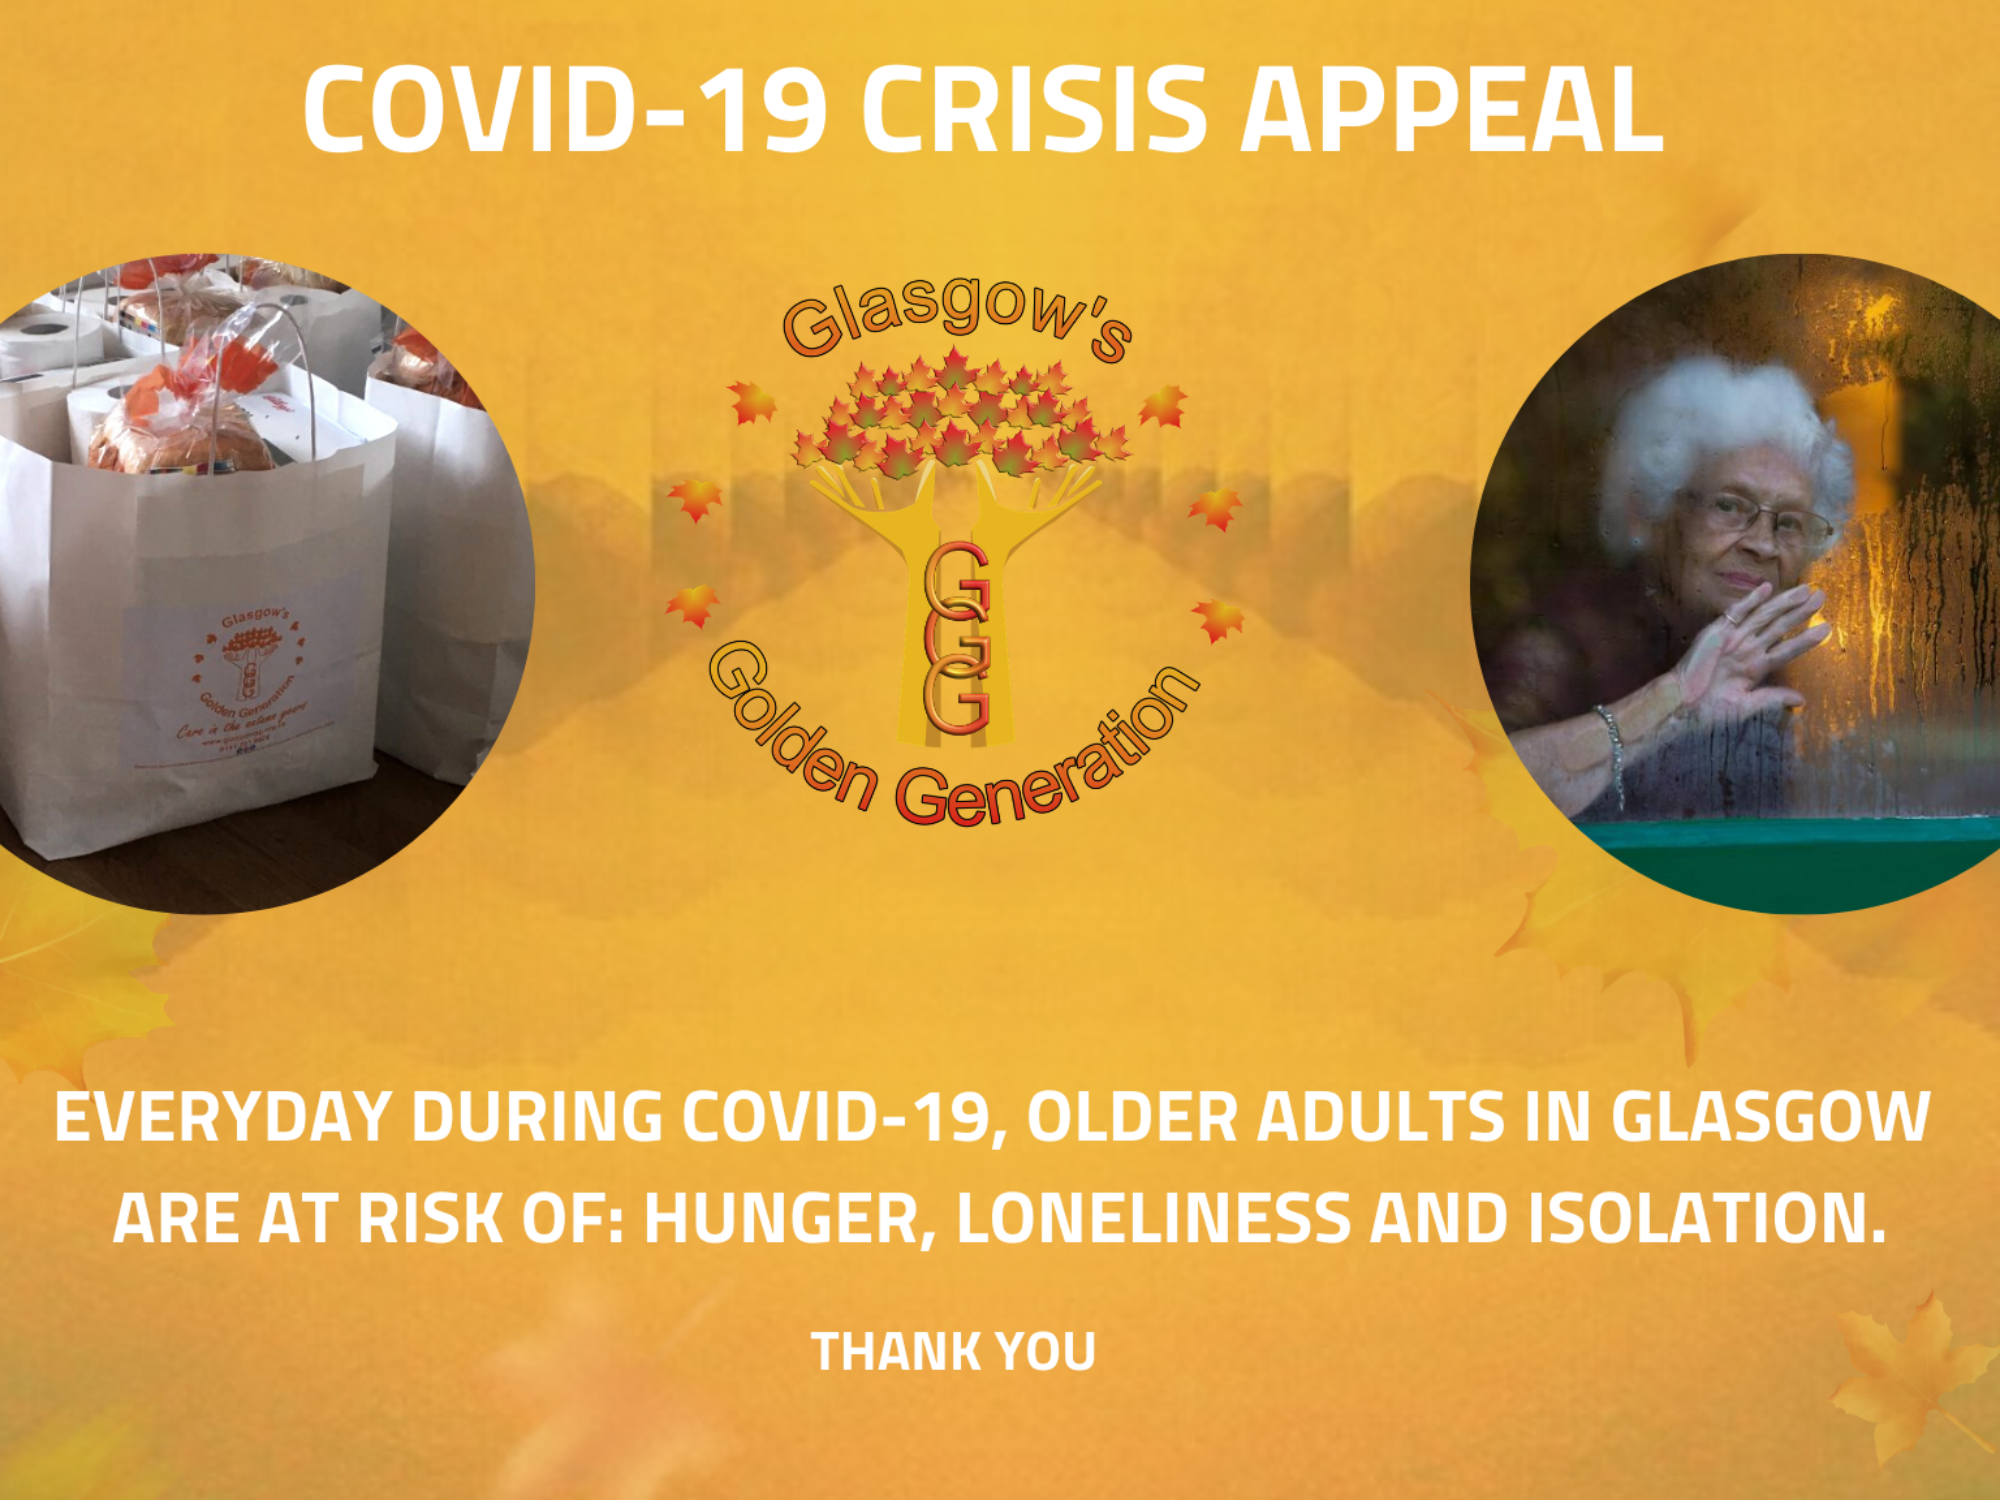 Covid-19 Crisis Appeal